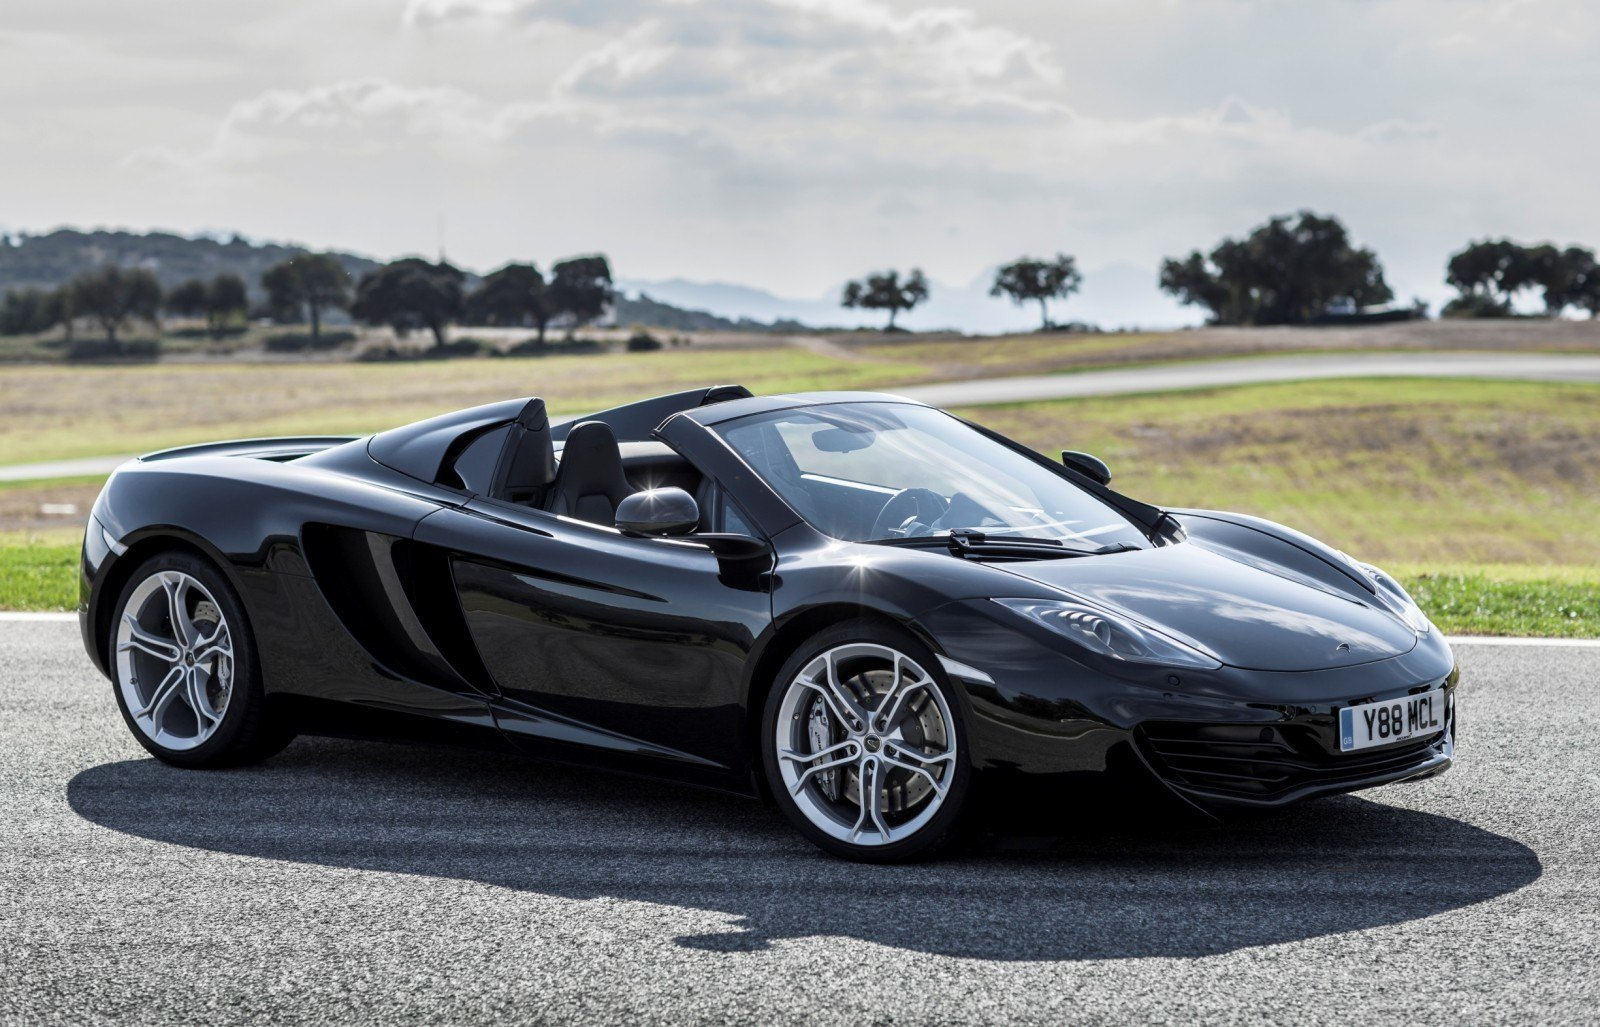 Voracious 12c Spider Demand Propels Mclaren To Add 5 New